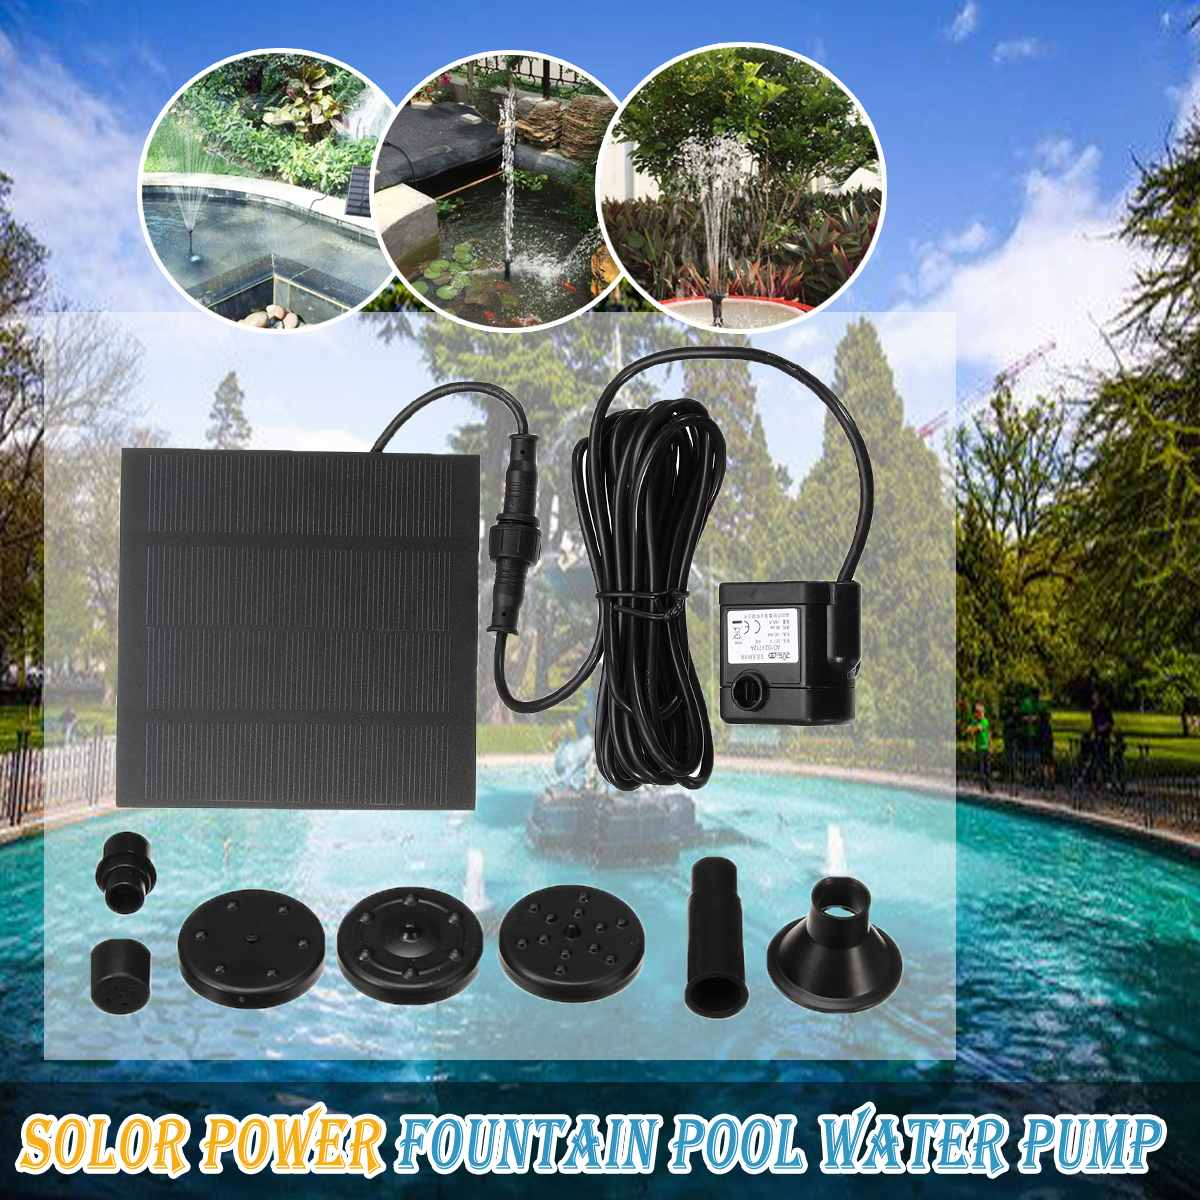 Solar Power Floating Fountain Water Pump for Garden Landscape Pond Pool Fish Tank Pool Garden Solar Power Decorative FountainSolar Power Floating Fountain Water Pump for Garden Landscape Pond Pool Fish Tank Pool Garden Solar Power Decorative Fountain